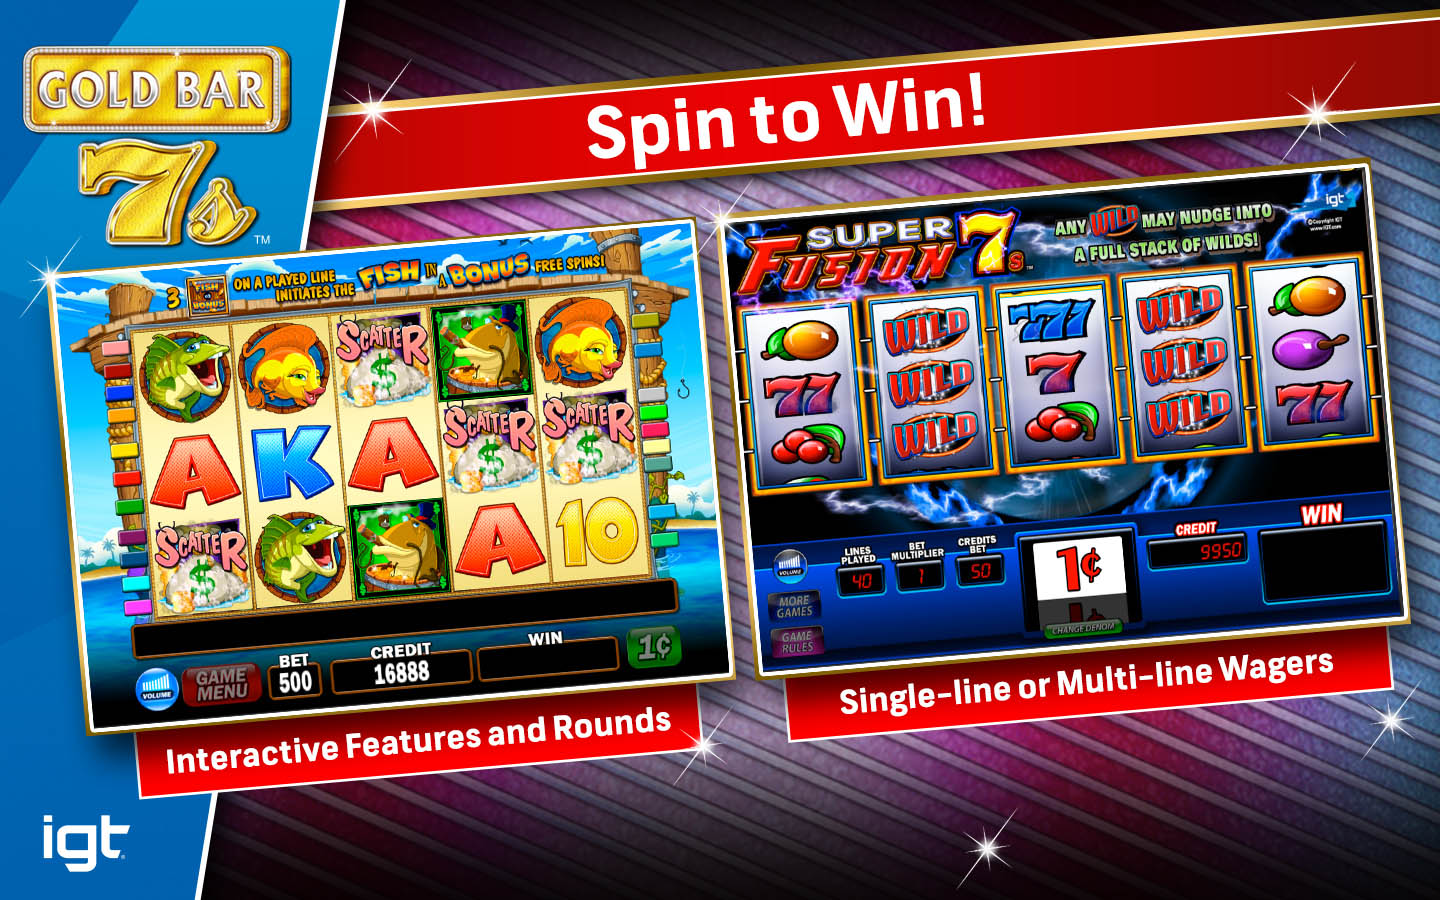 Igt slots gold bar 7 39 s pc buy and download on gamersgate for Big fish casino gold bars